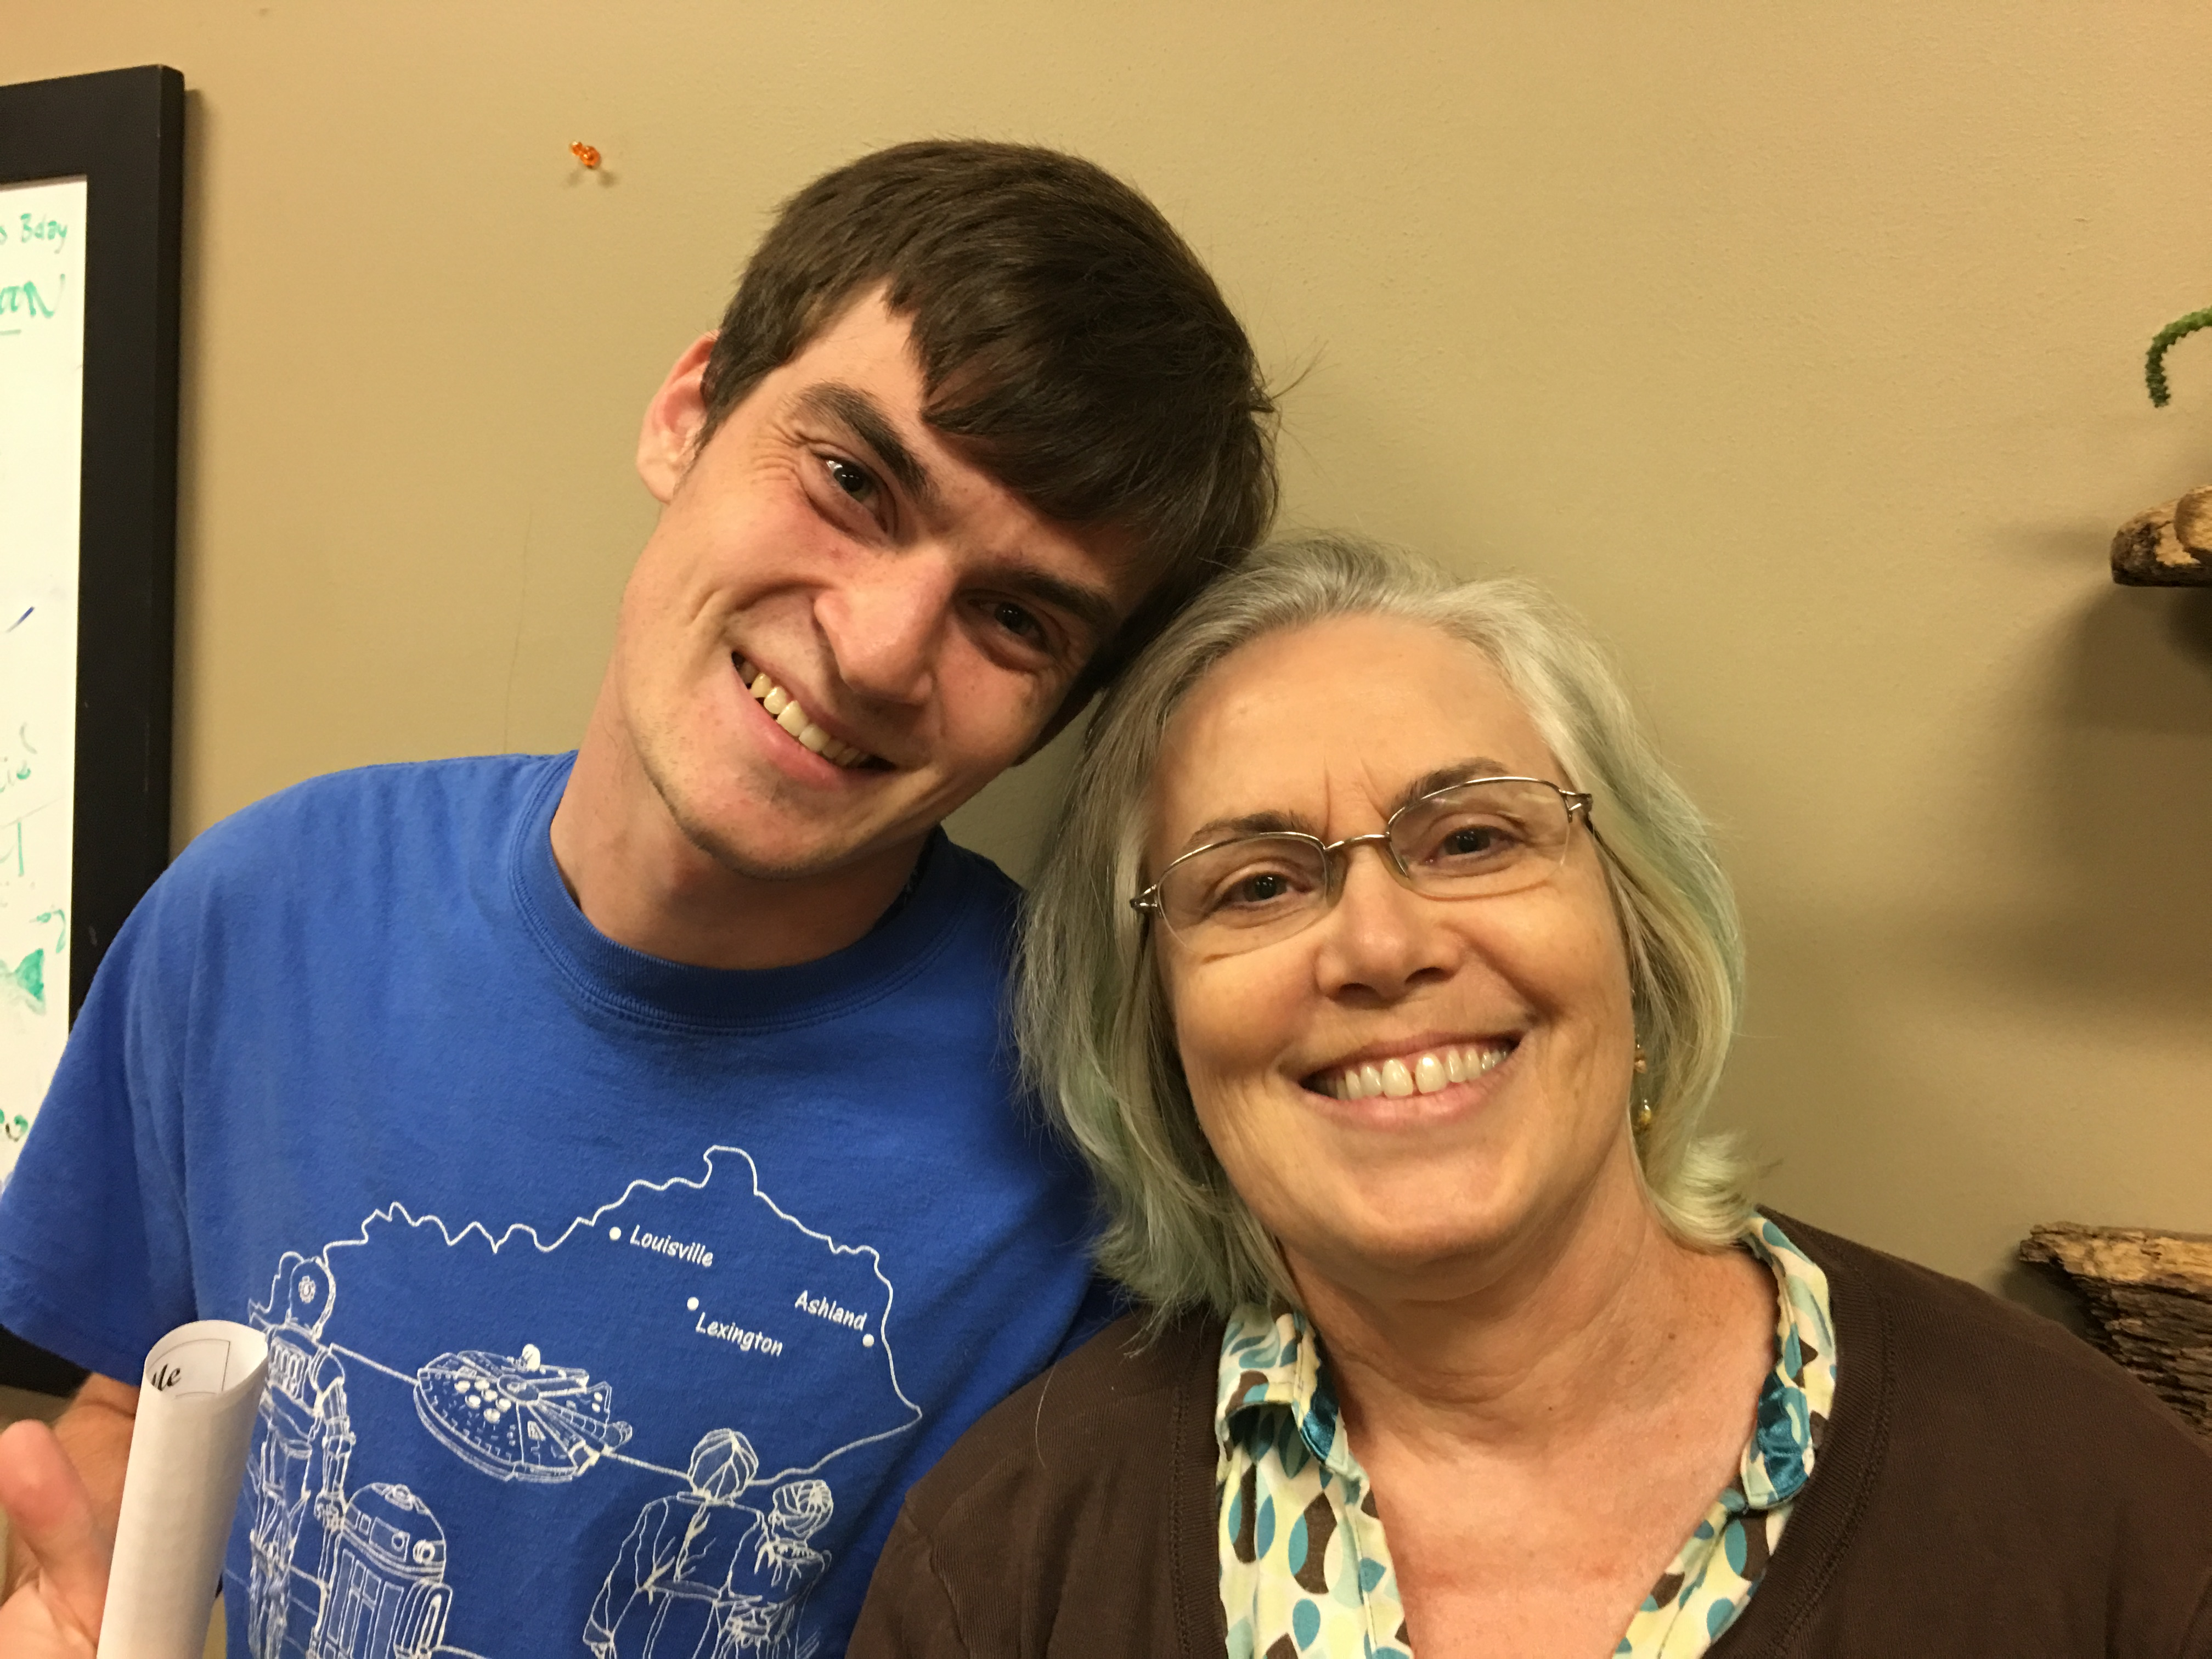 Jake Parsons with his mother at a strategy meeting to fight Medicaid cuts.